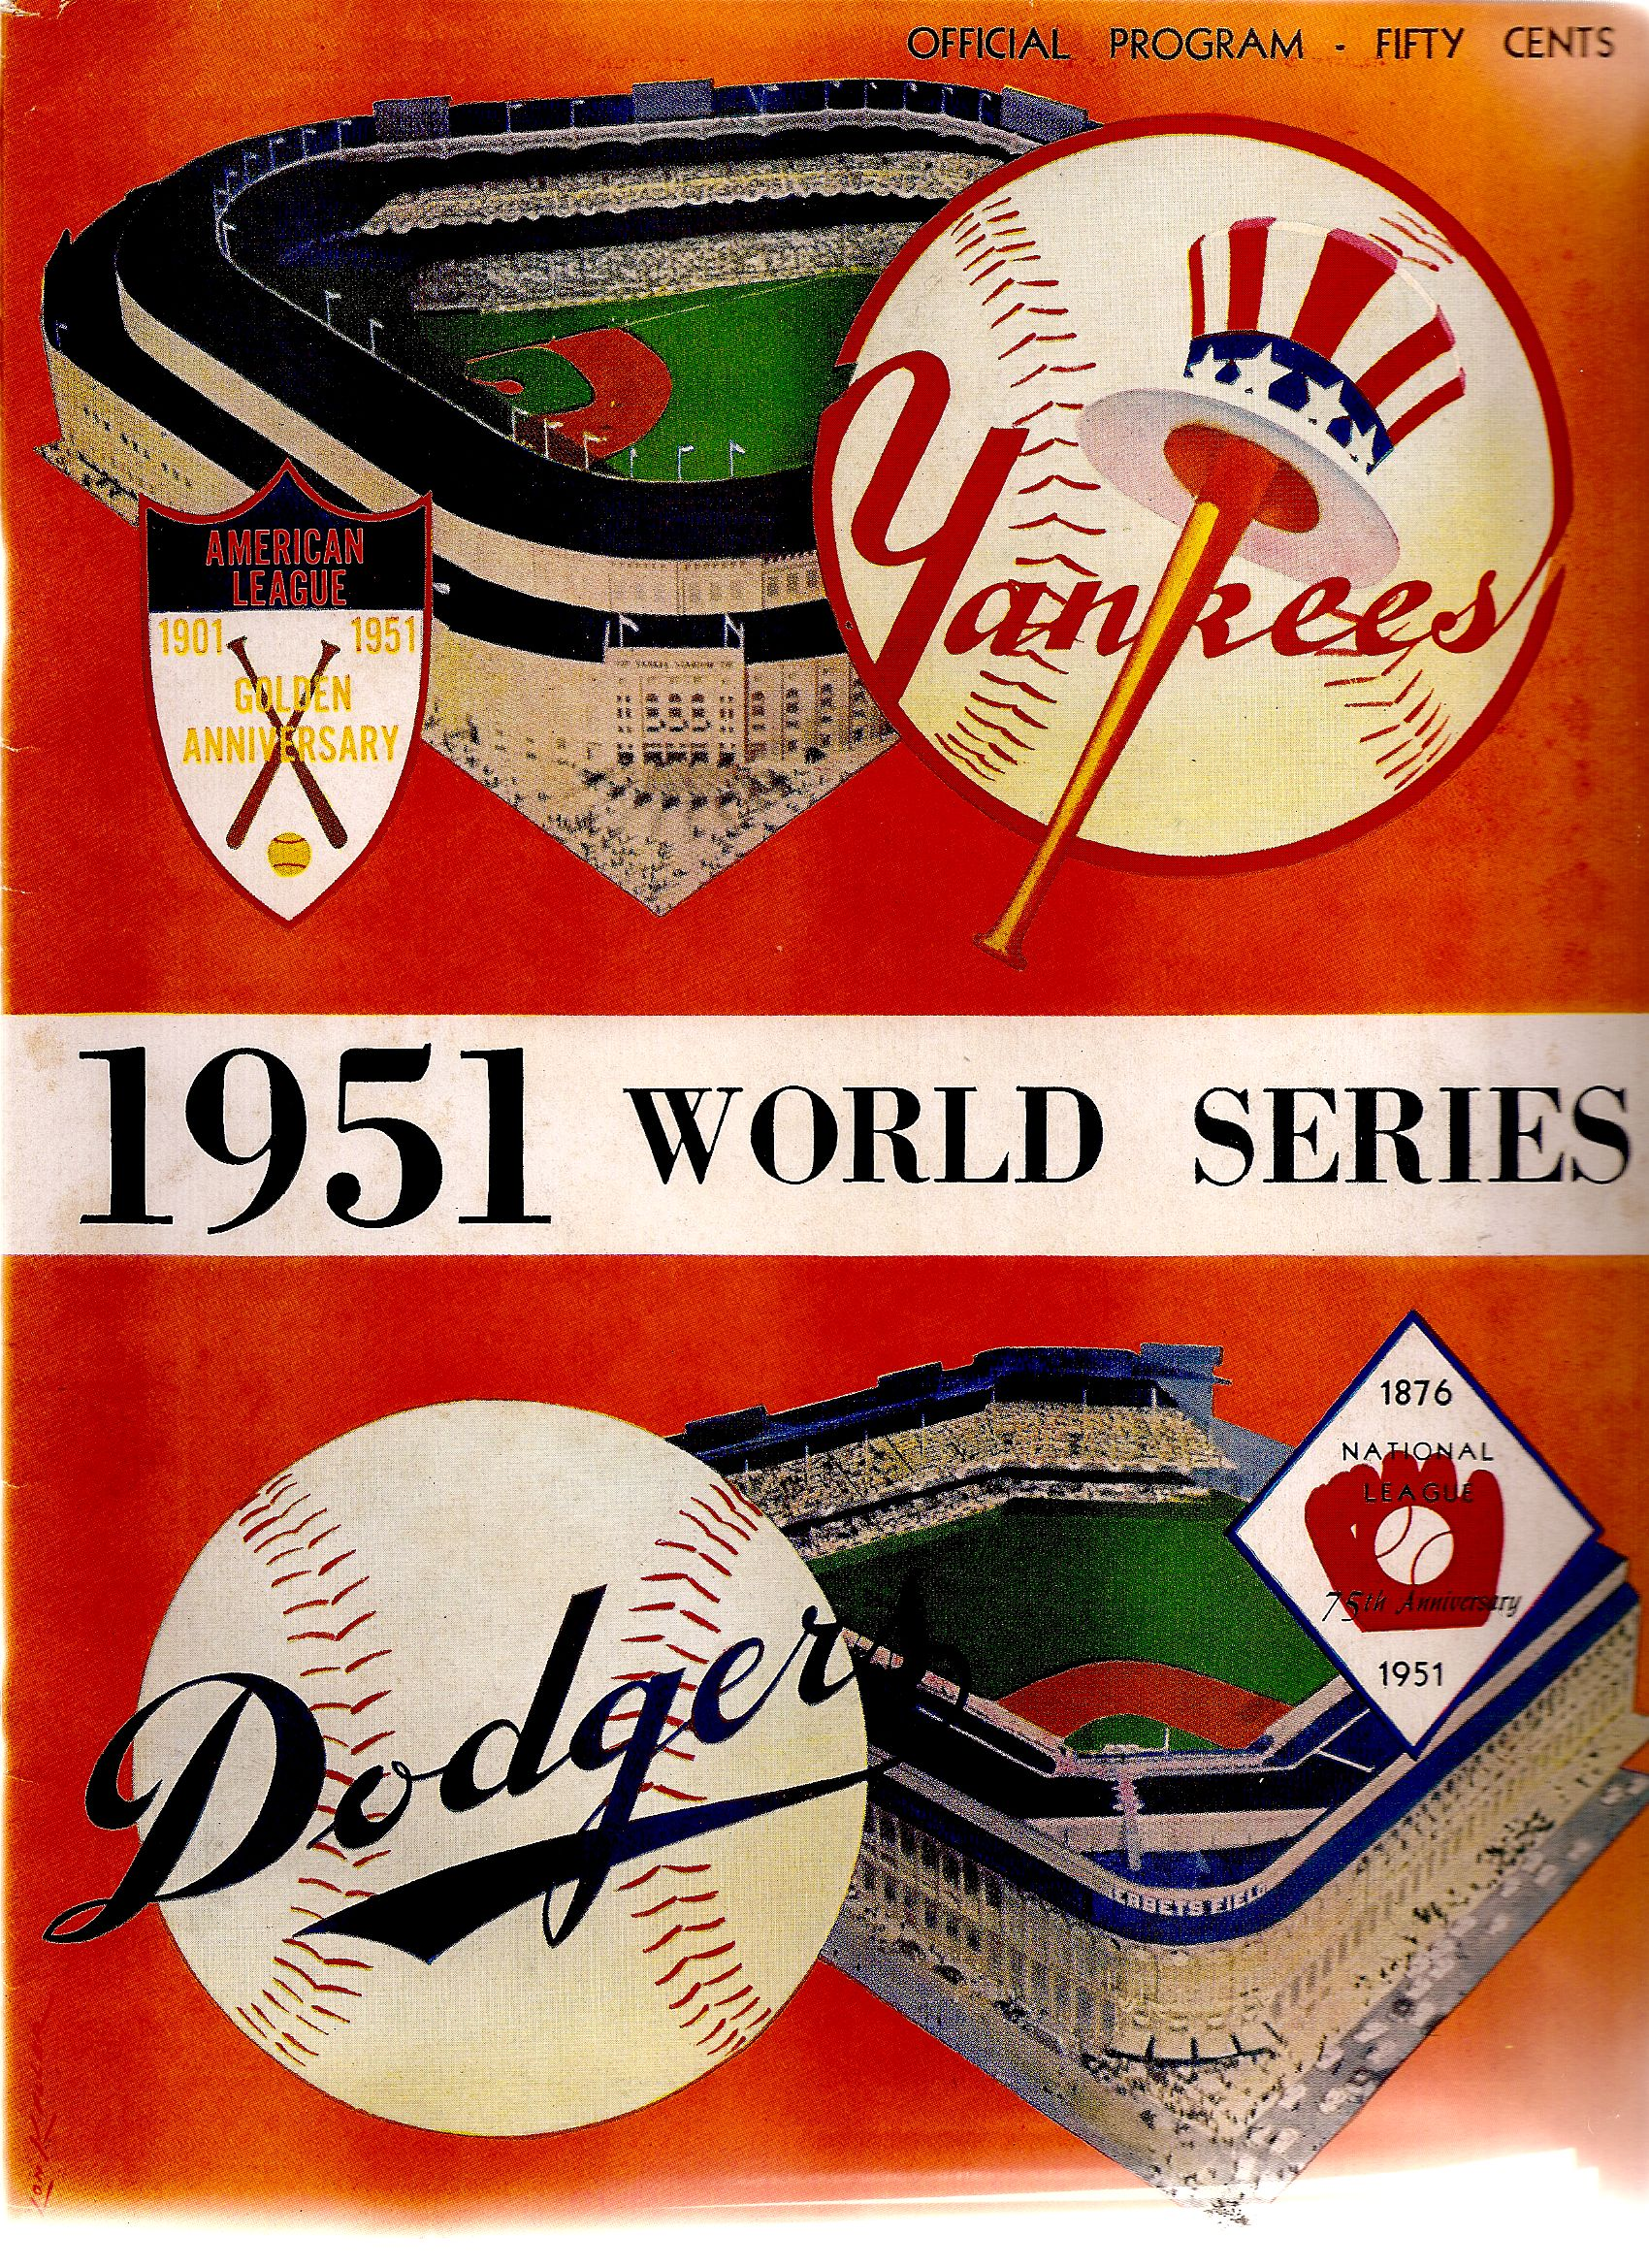 White Sox reproduction metal tin sign 8 x 12 1959 World Series Dodgers vs